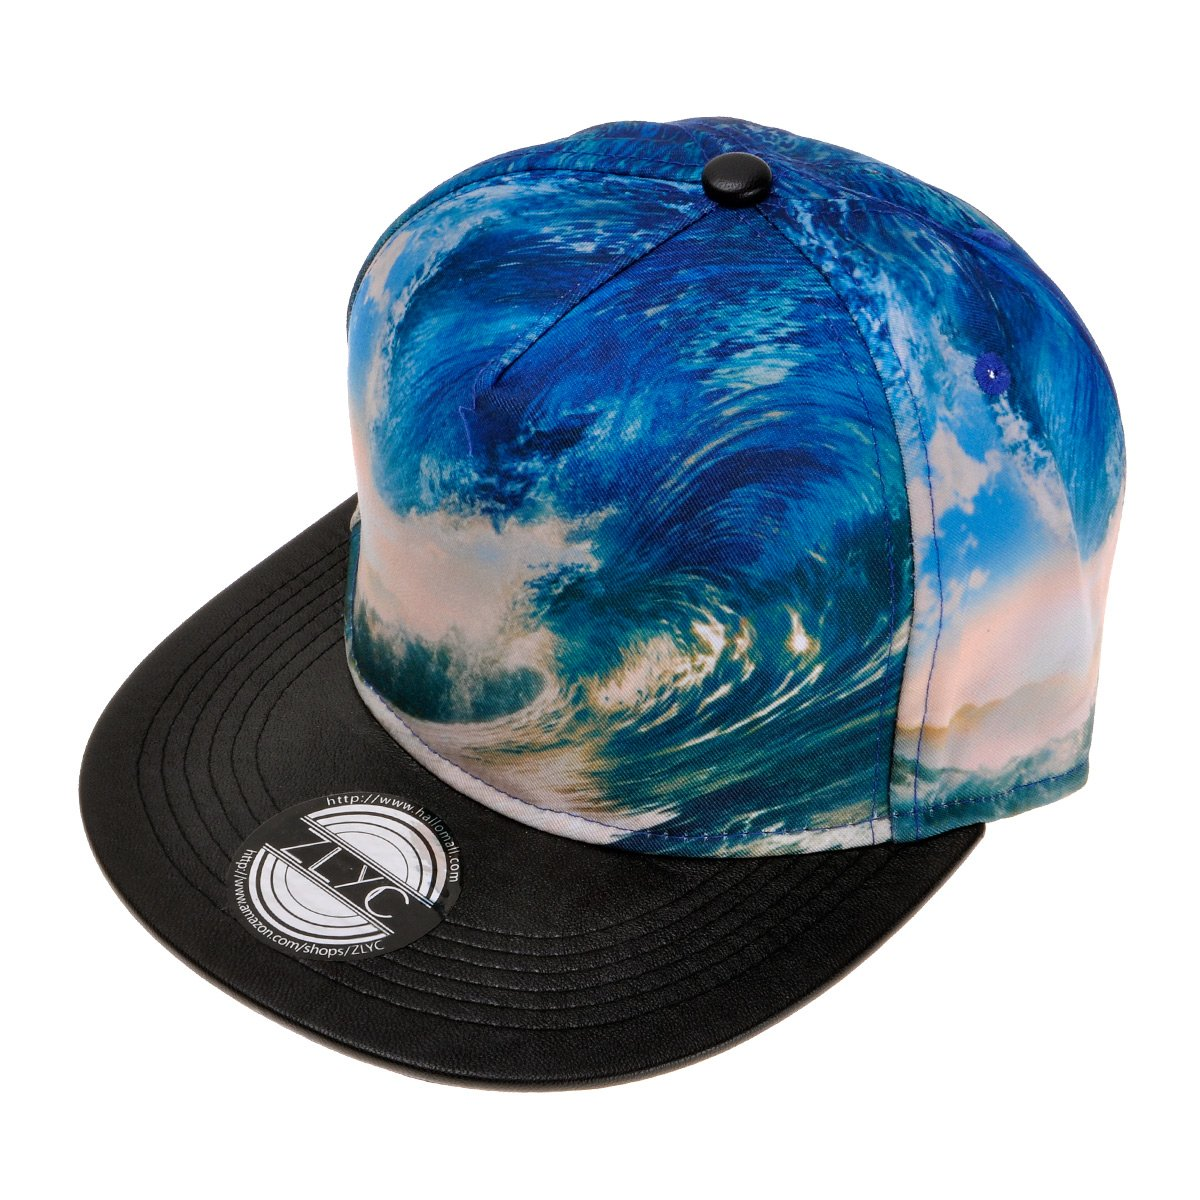 c07c0182784 ZLYC New Fashion High Quality Landscape Palm Wave Temple Digital Print Hat  Adjust Baseball Snapback Cap(Blue)  Amazon.co.uk  Clothing